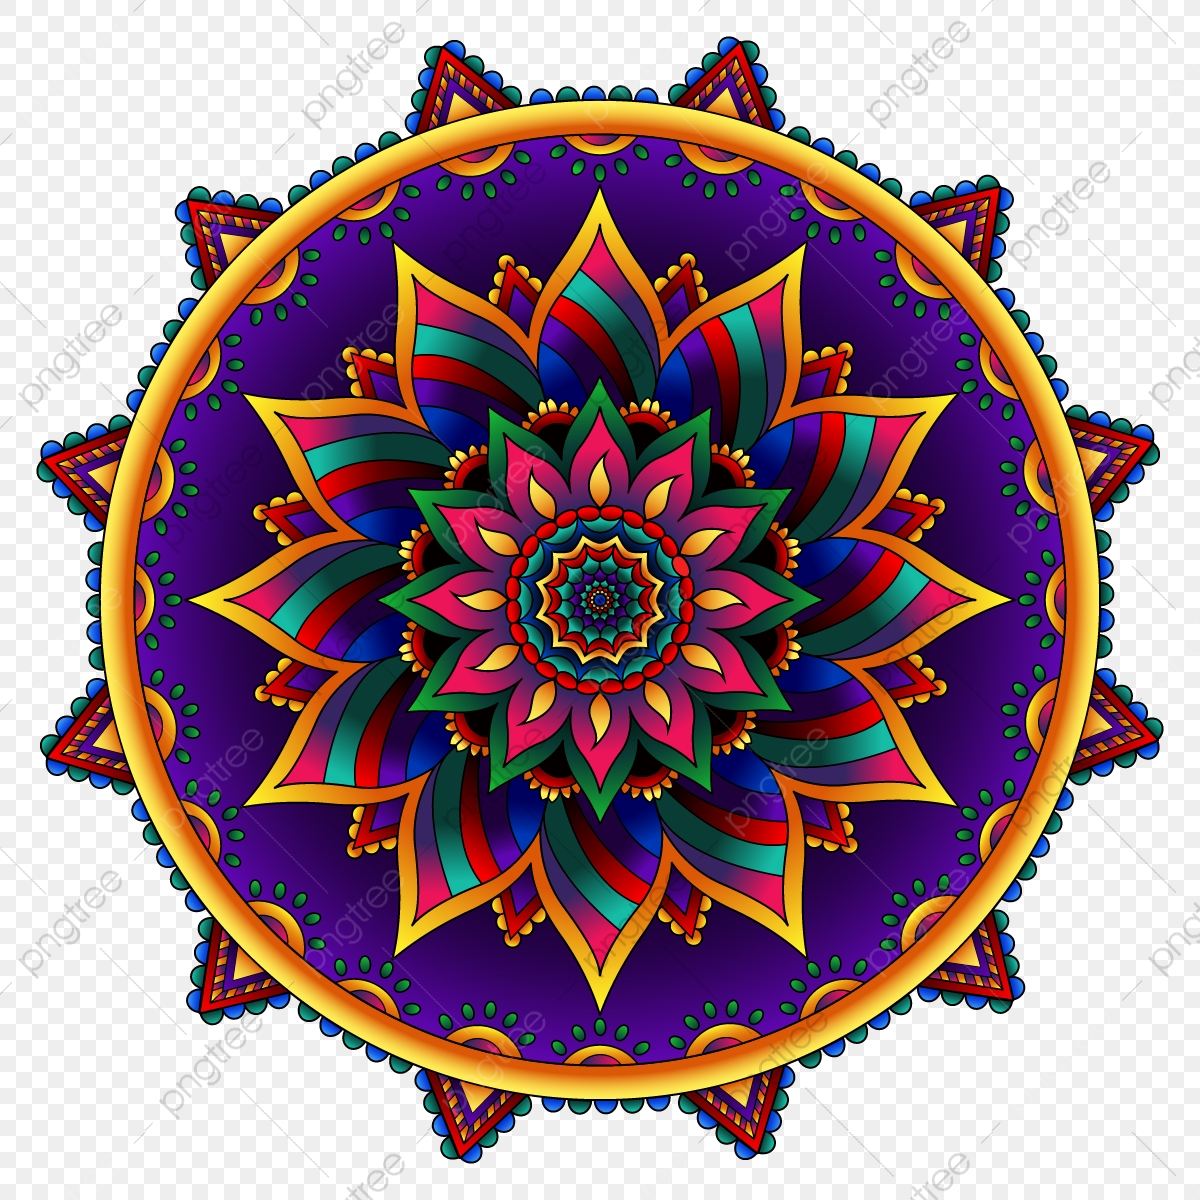 Rangoli Png Vector Psd And Clipart With Transparent Background For Free Download Pngtree